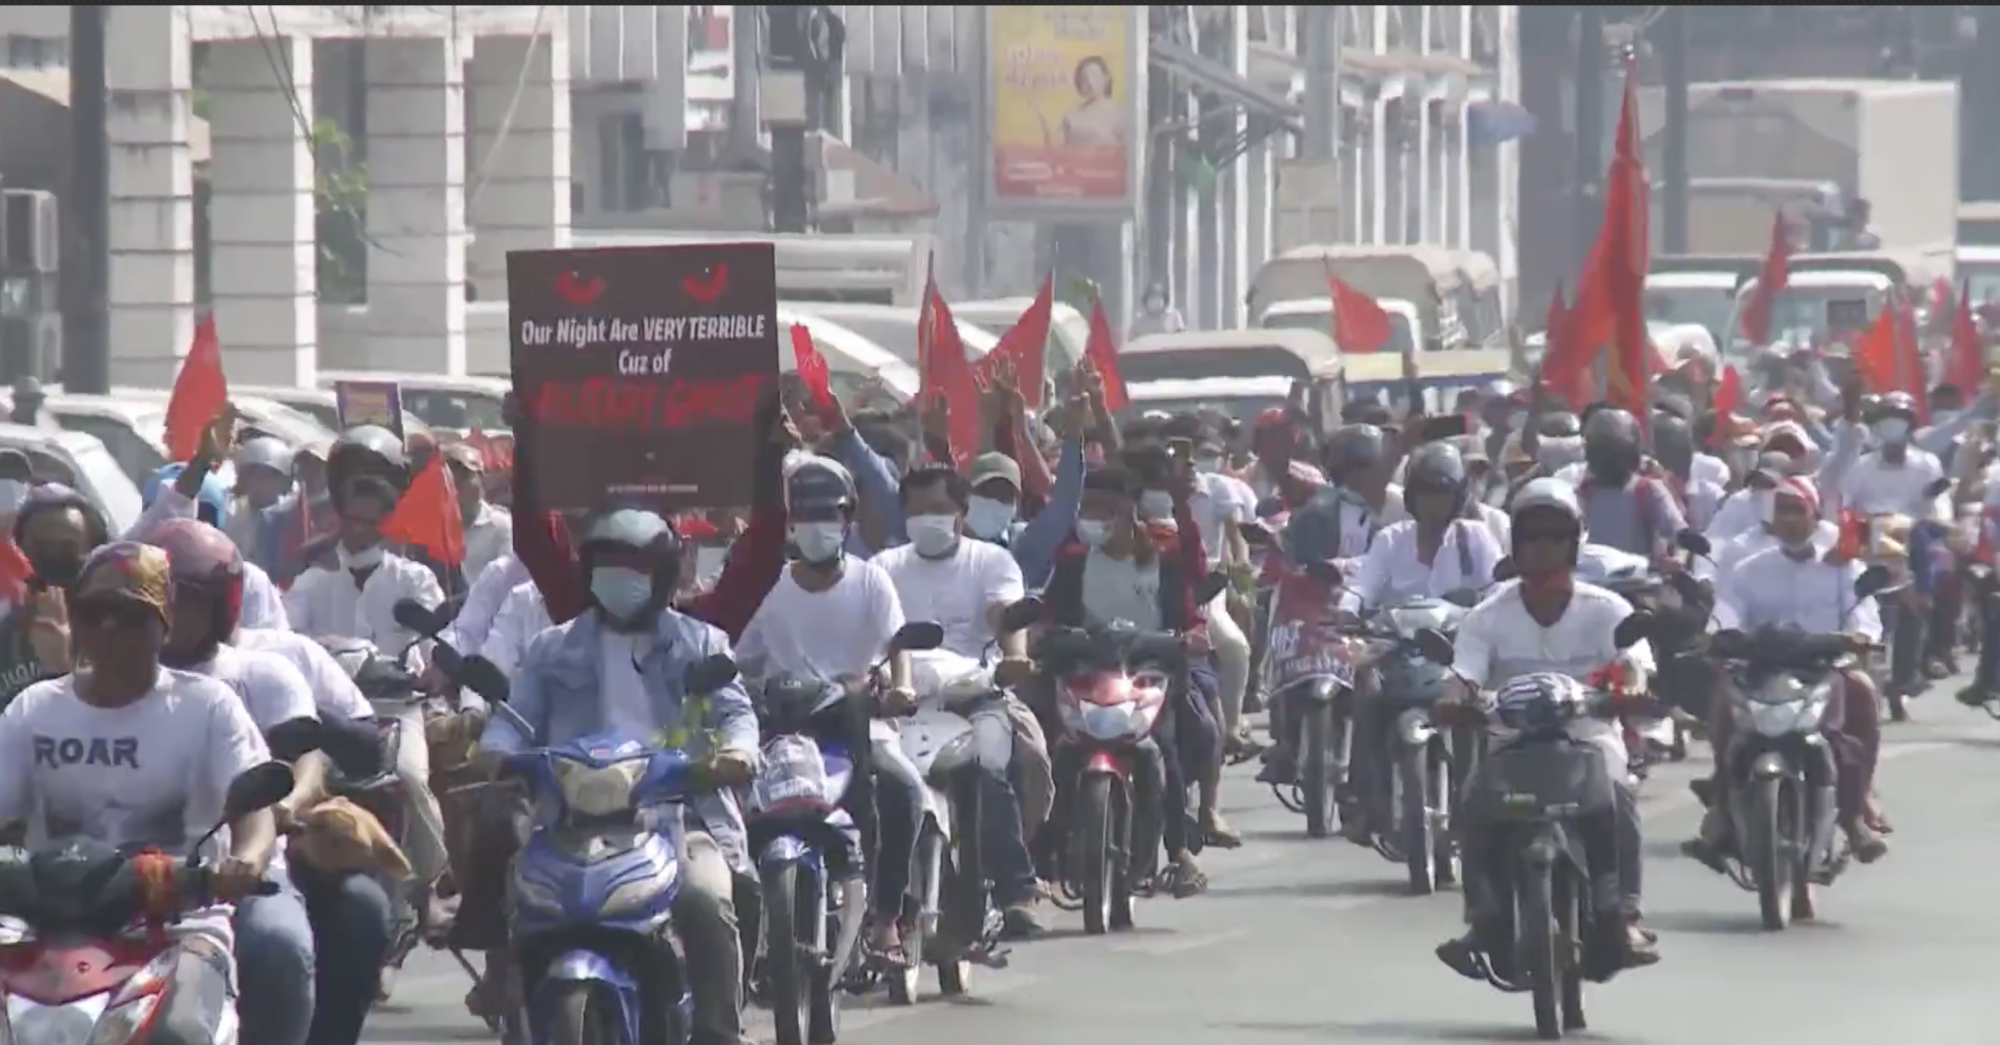 Myanmar anti-coup protesters stage nationwide general strike